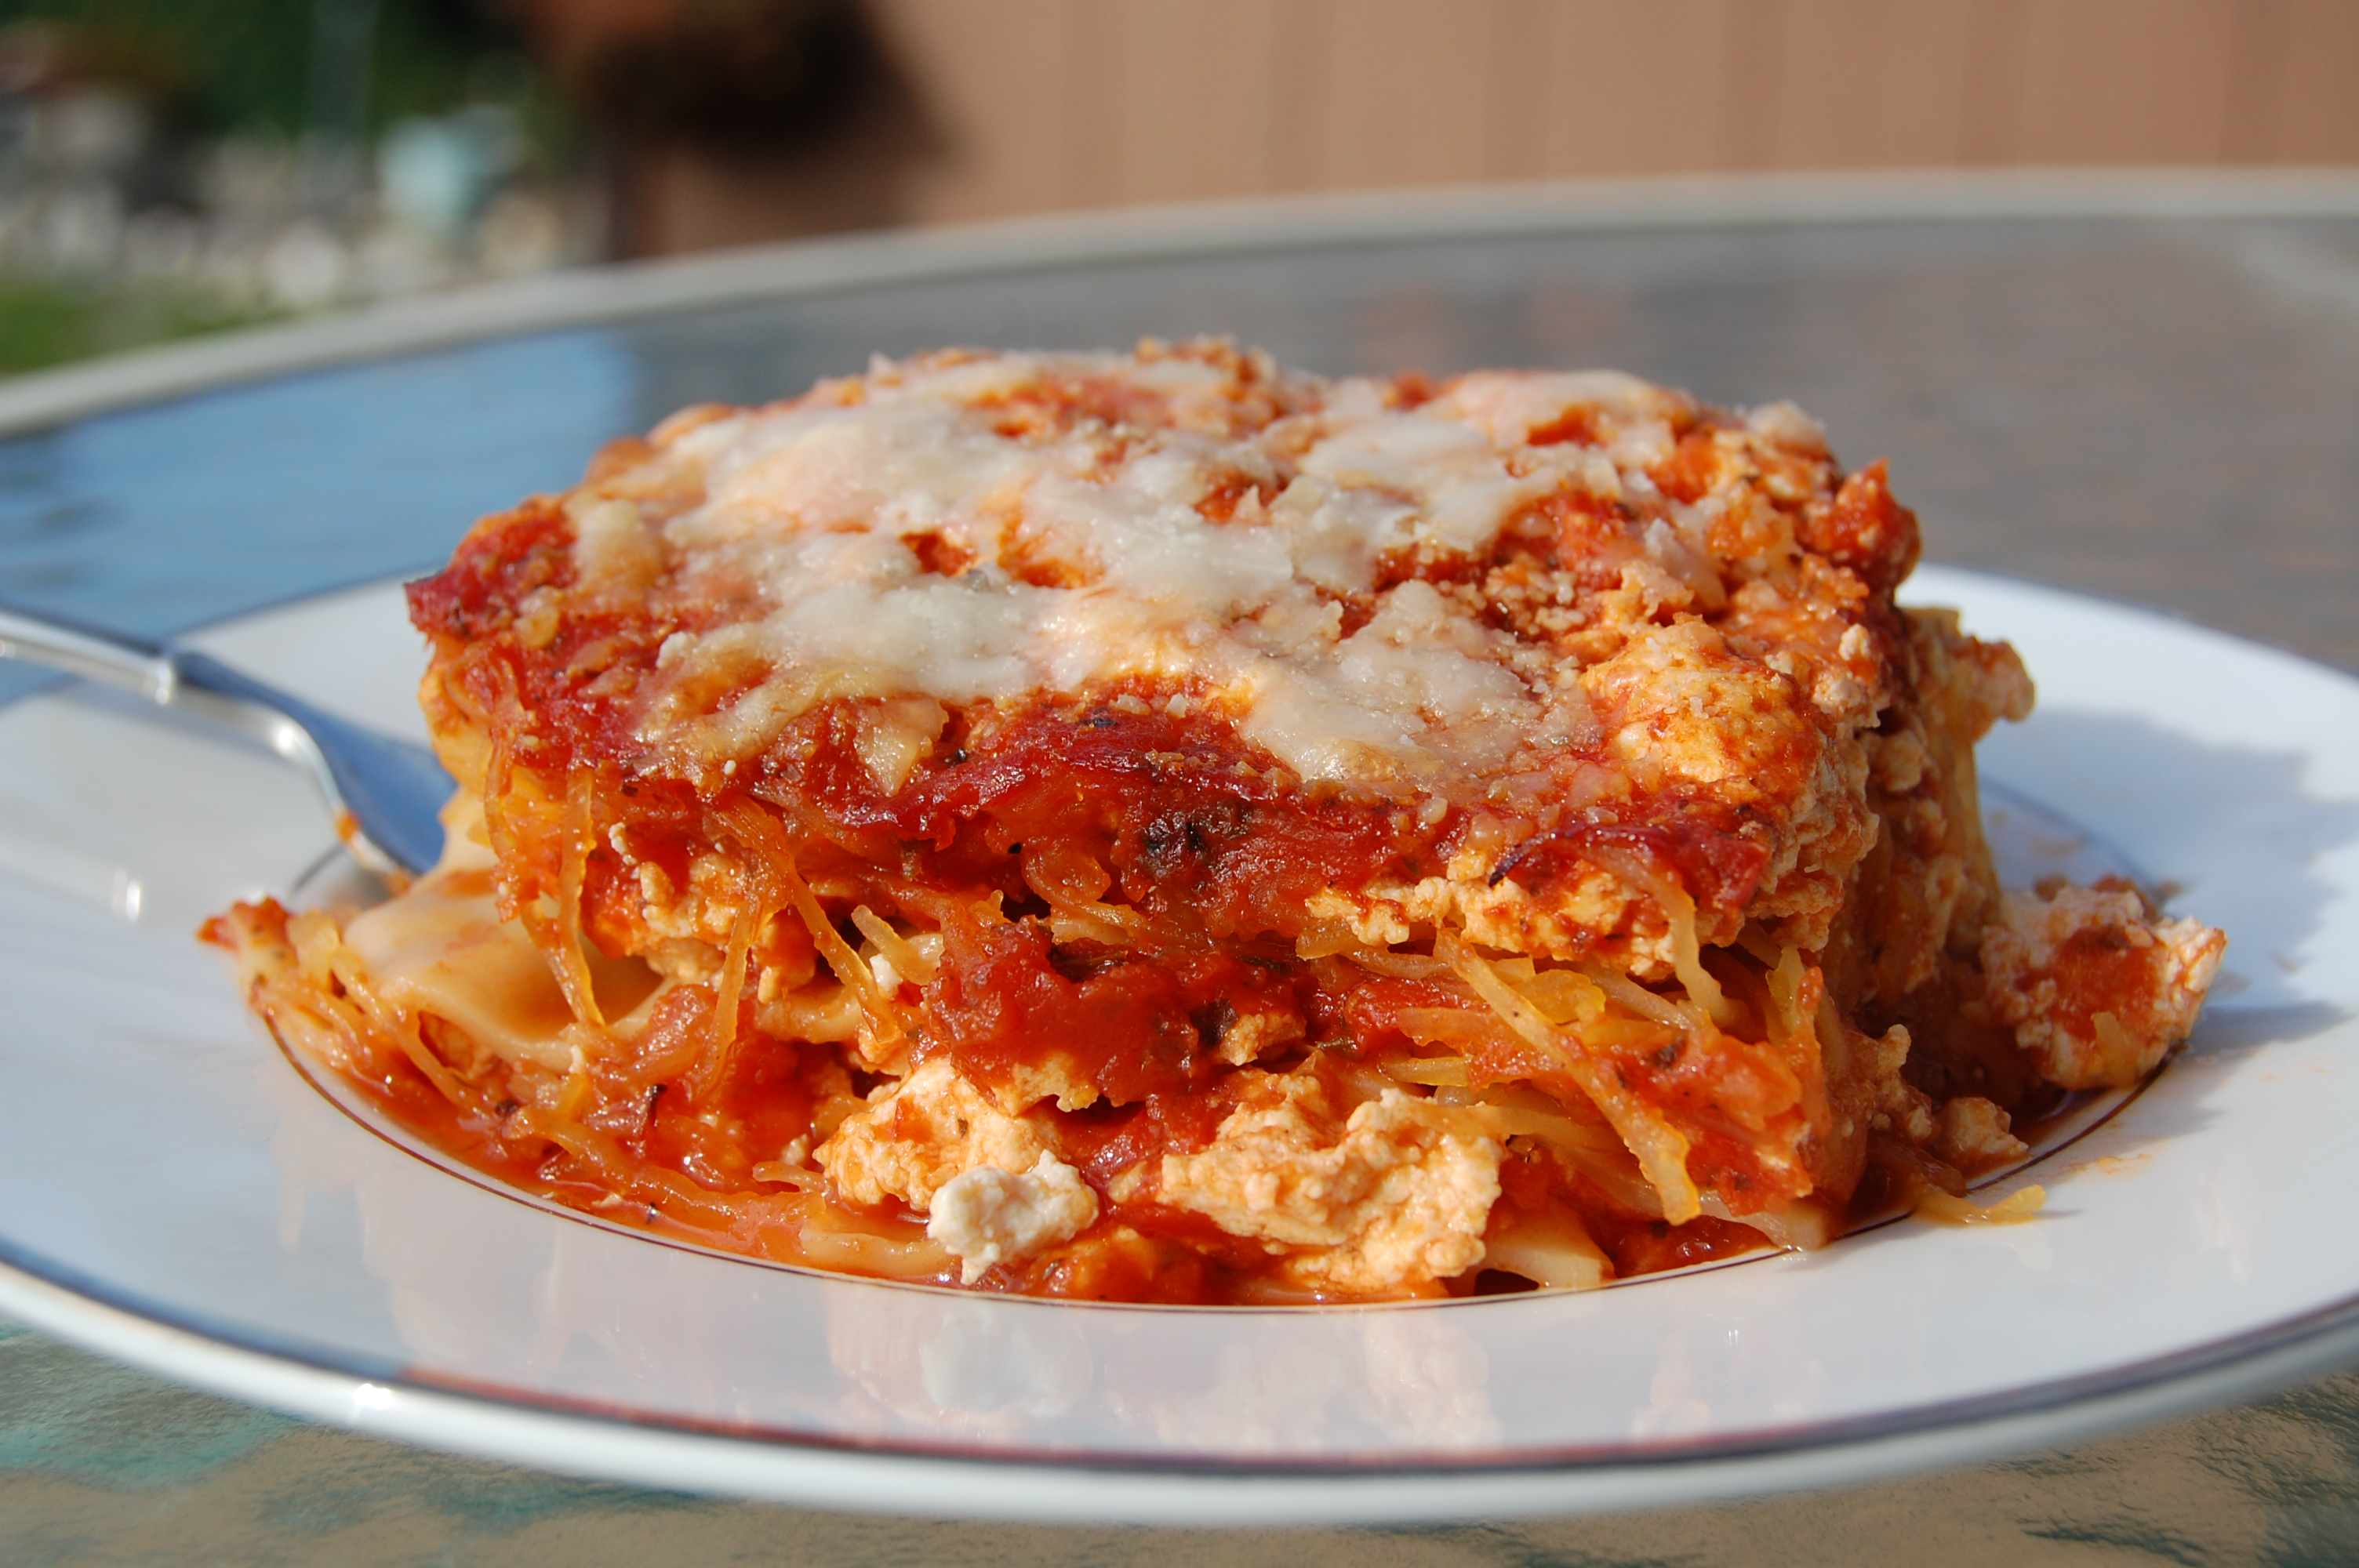 Spaghetti Squash Lasagna with Noodles | 40 Fit In The Mitt